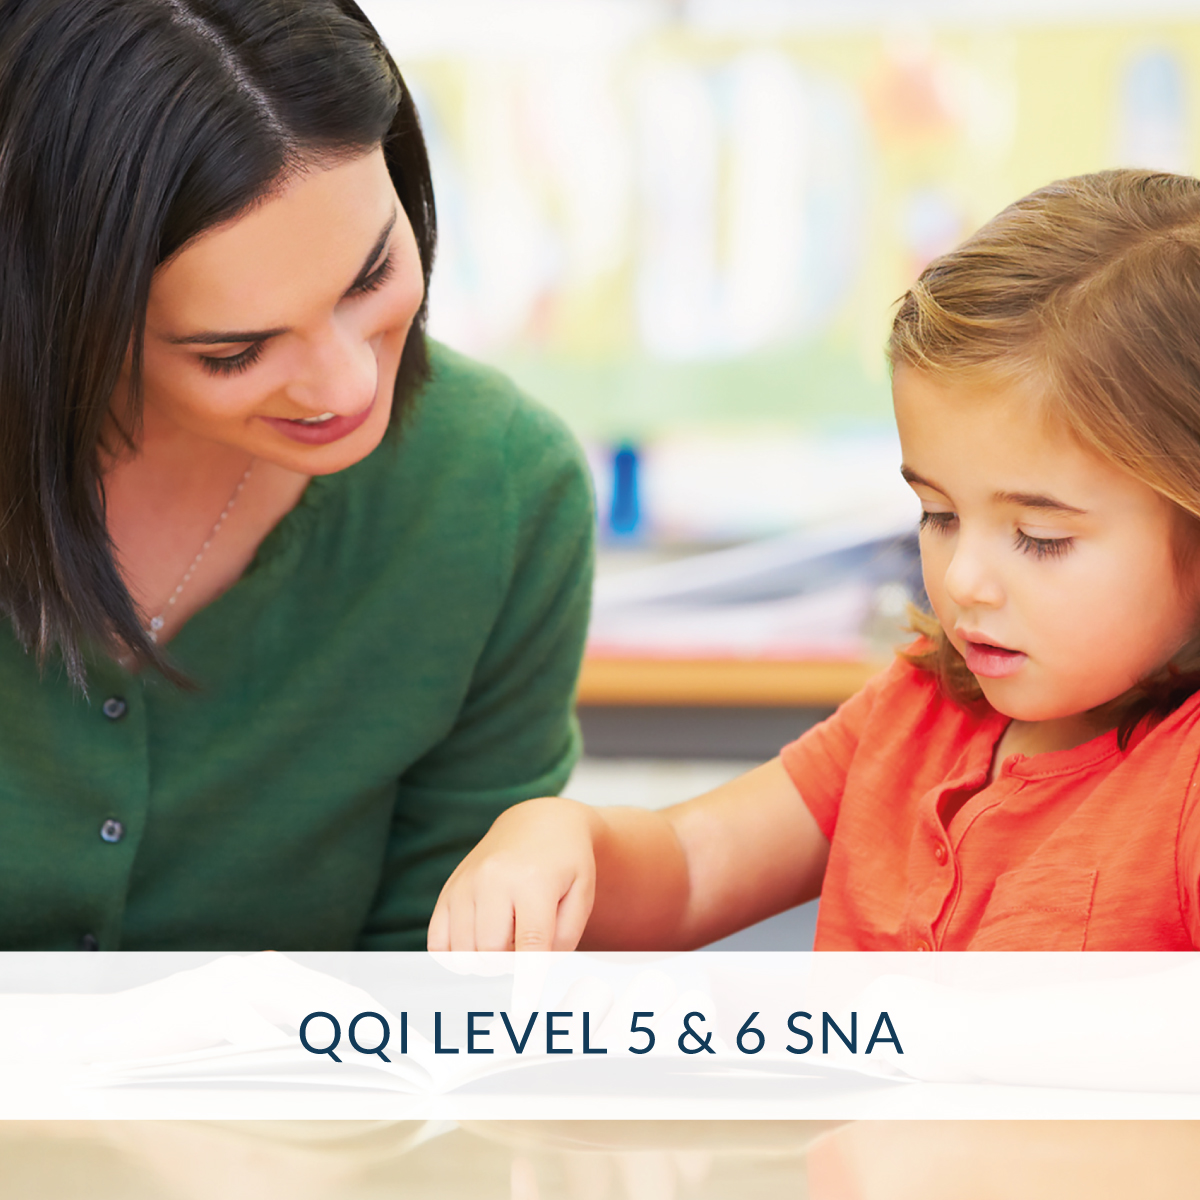 sna courses online